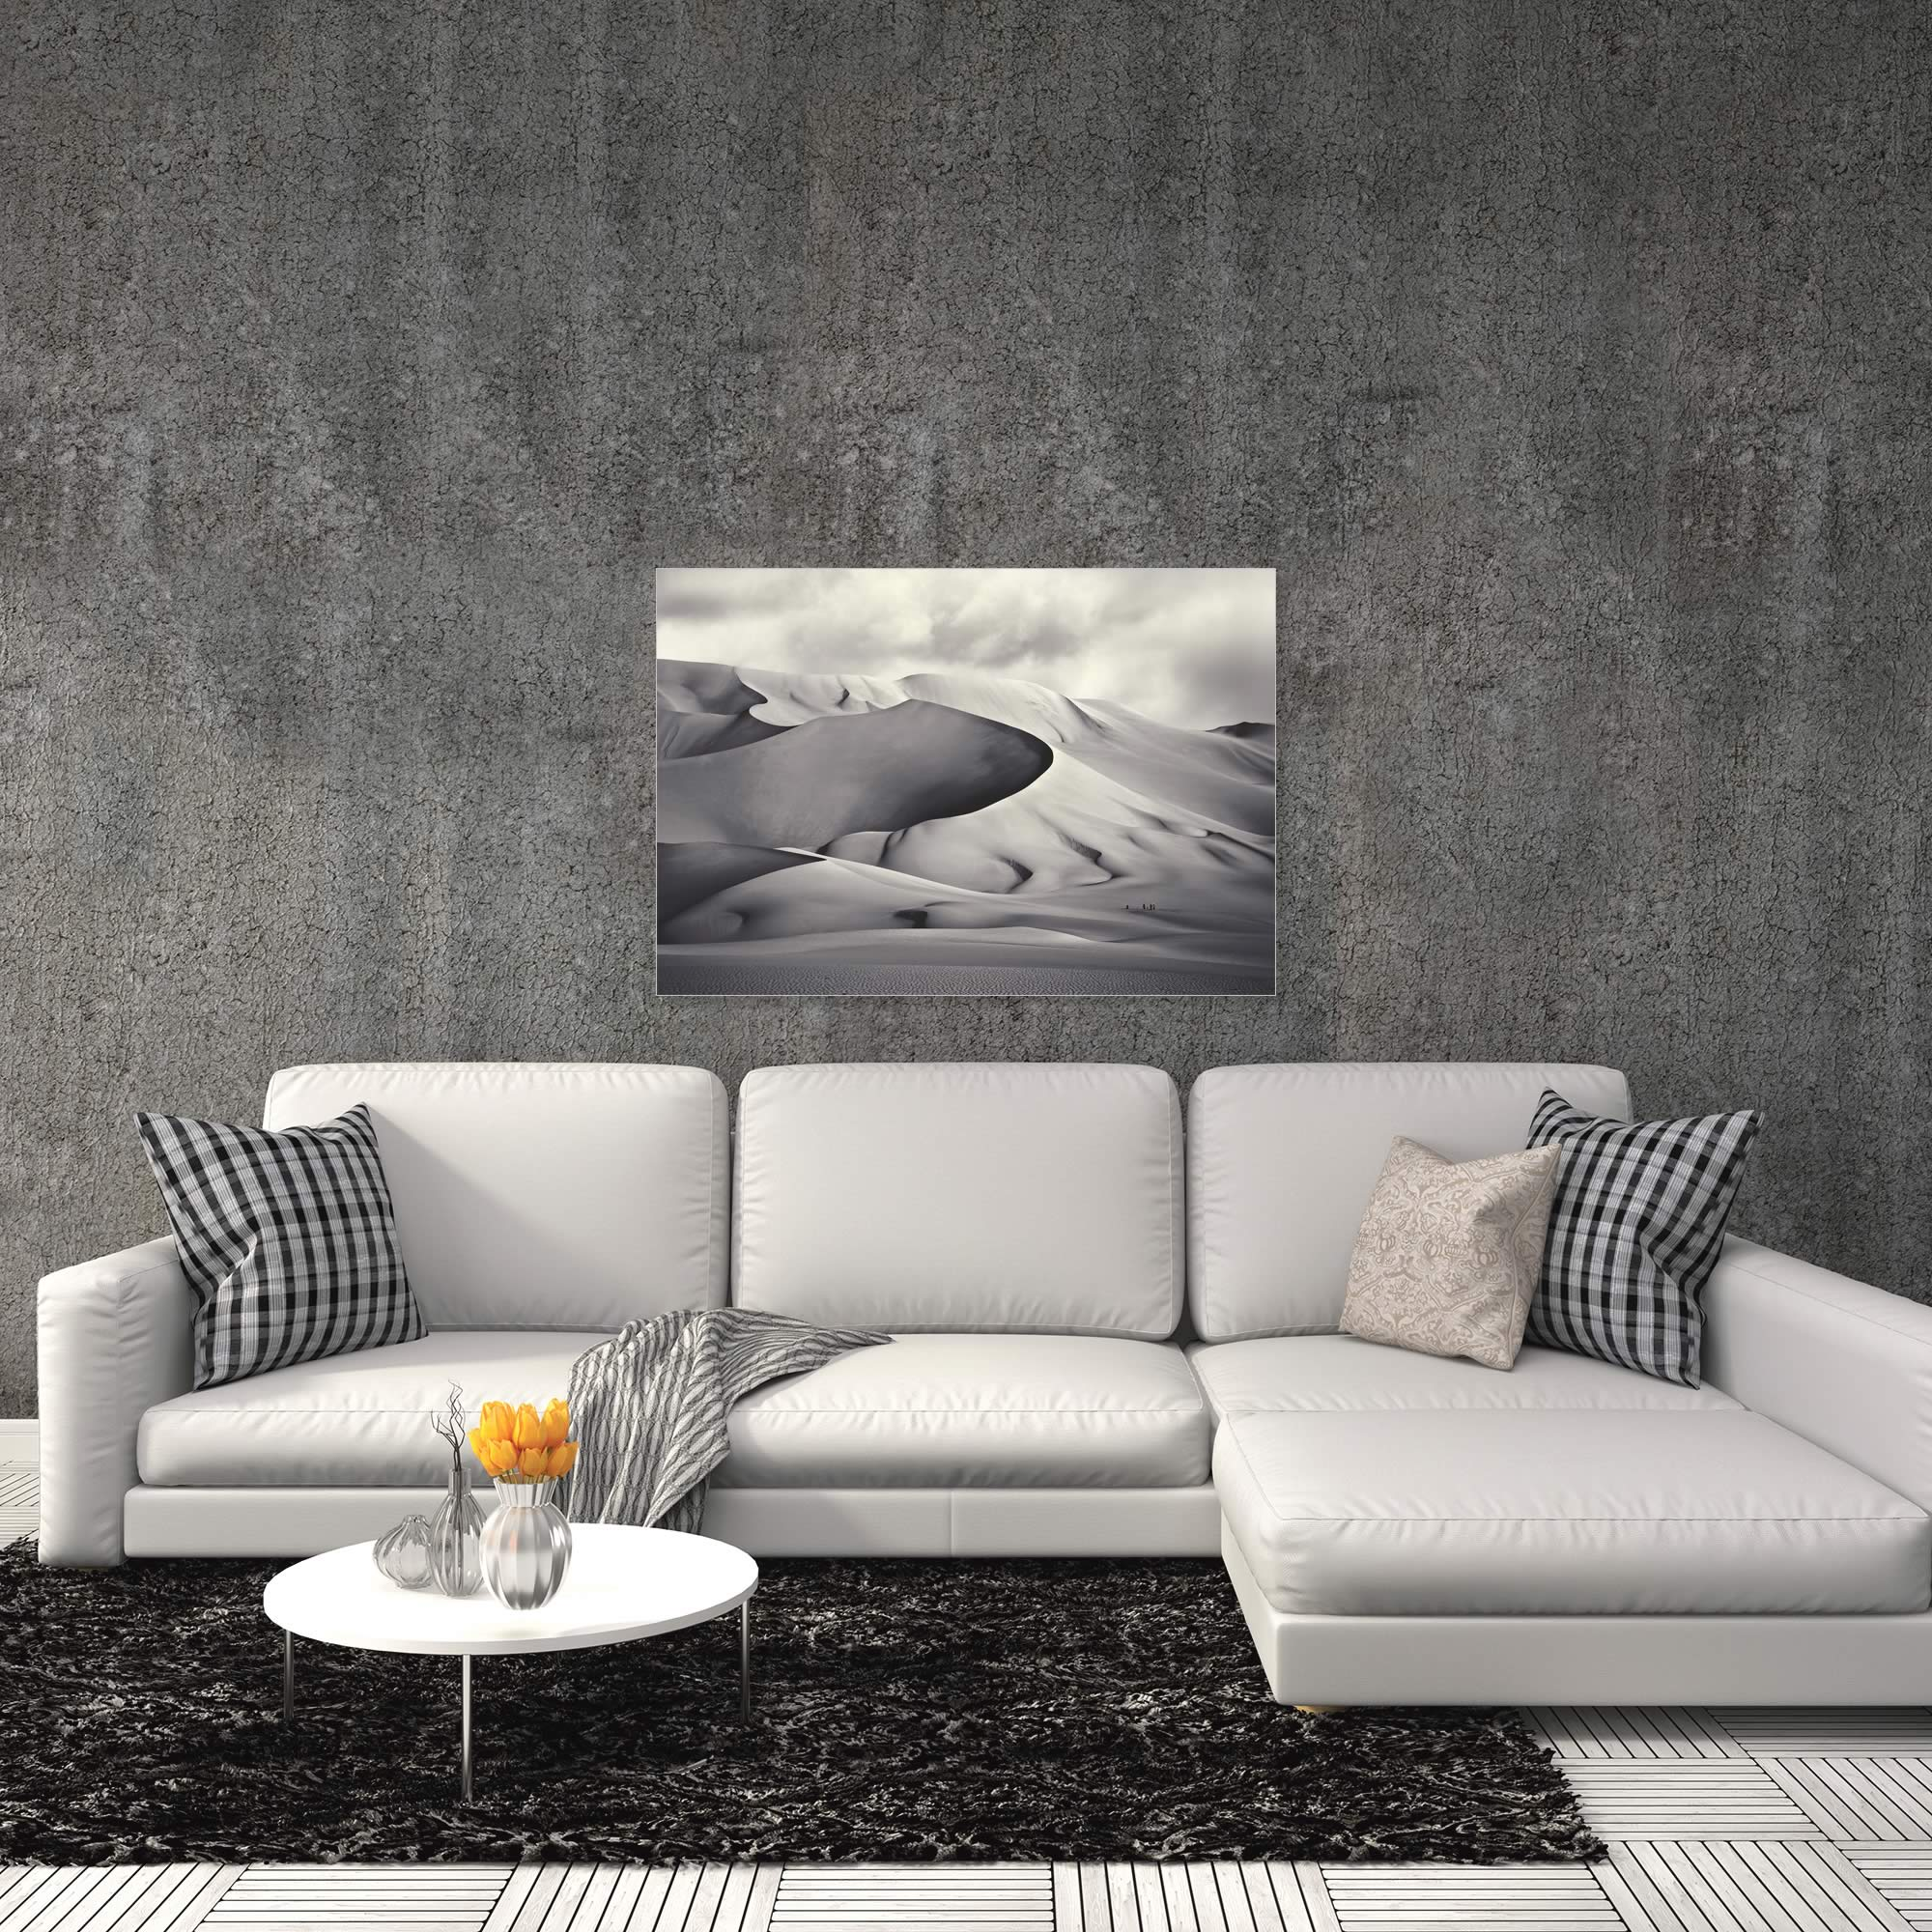 Desert Dunes by Manuel Vilches - Minimalist Photography on Metal or Acrylic - Alternate View 1